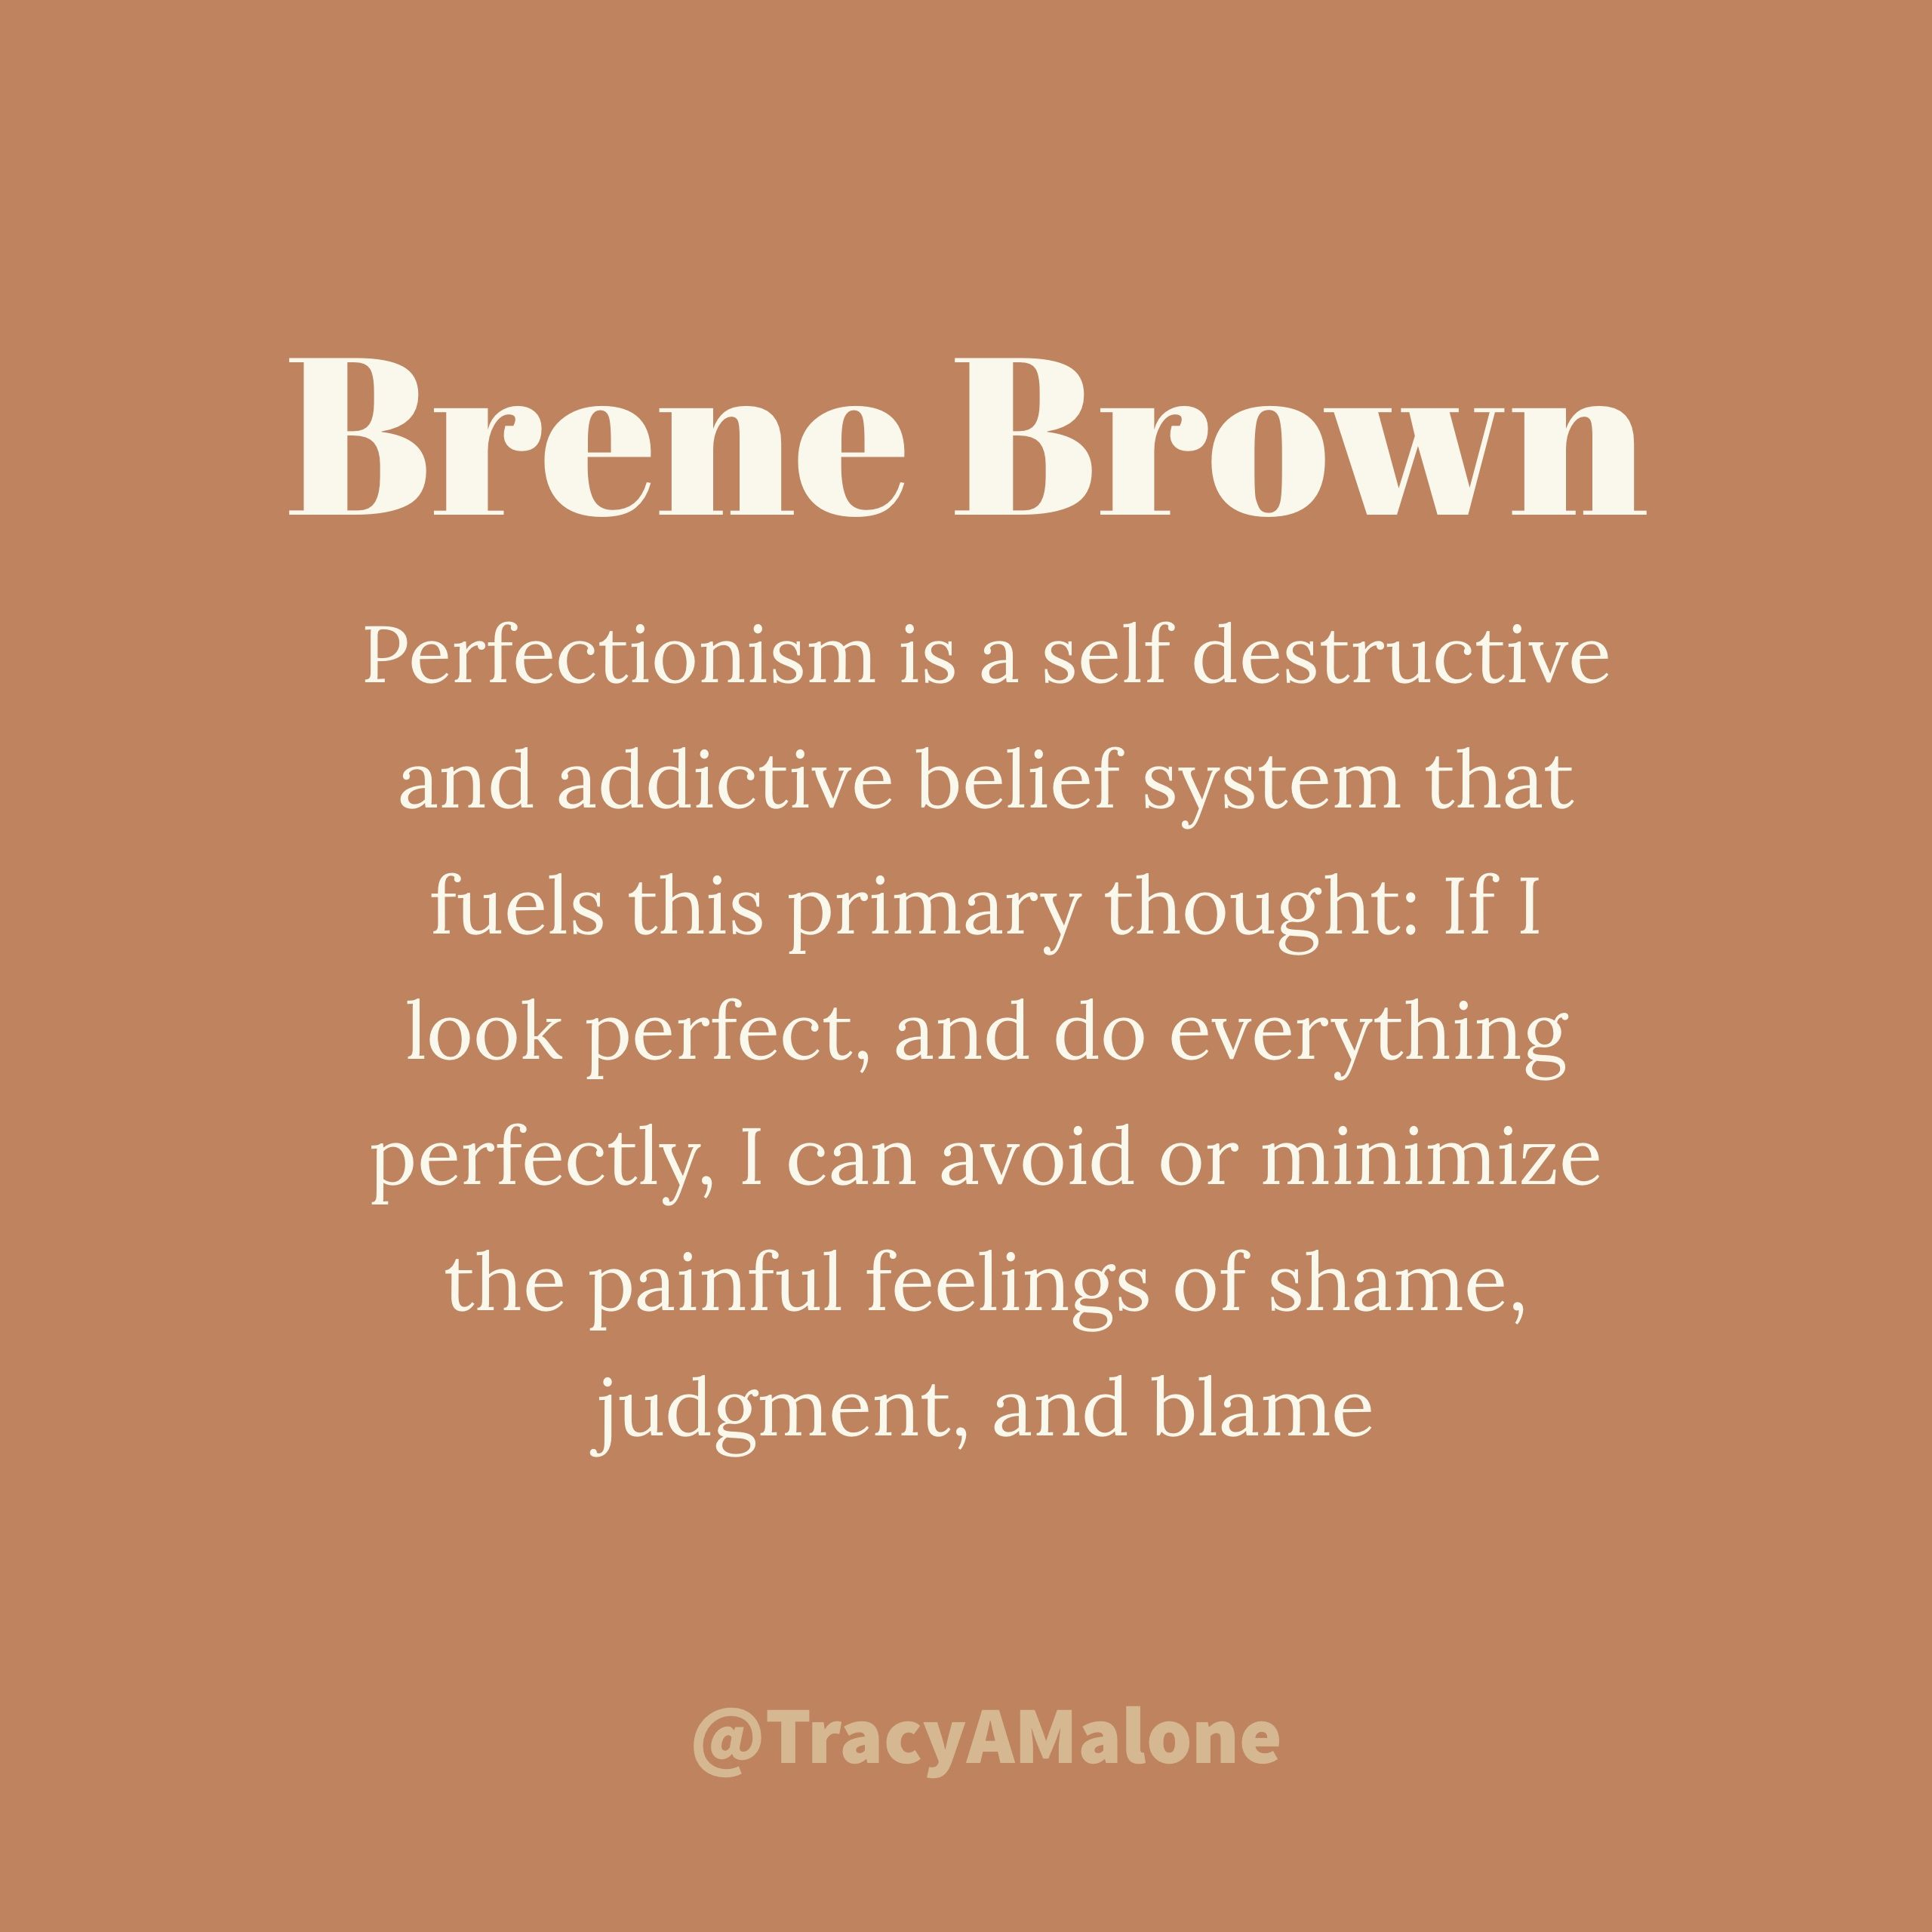 Brene Brown quote about perfectionism